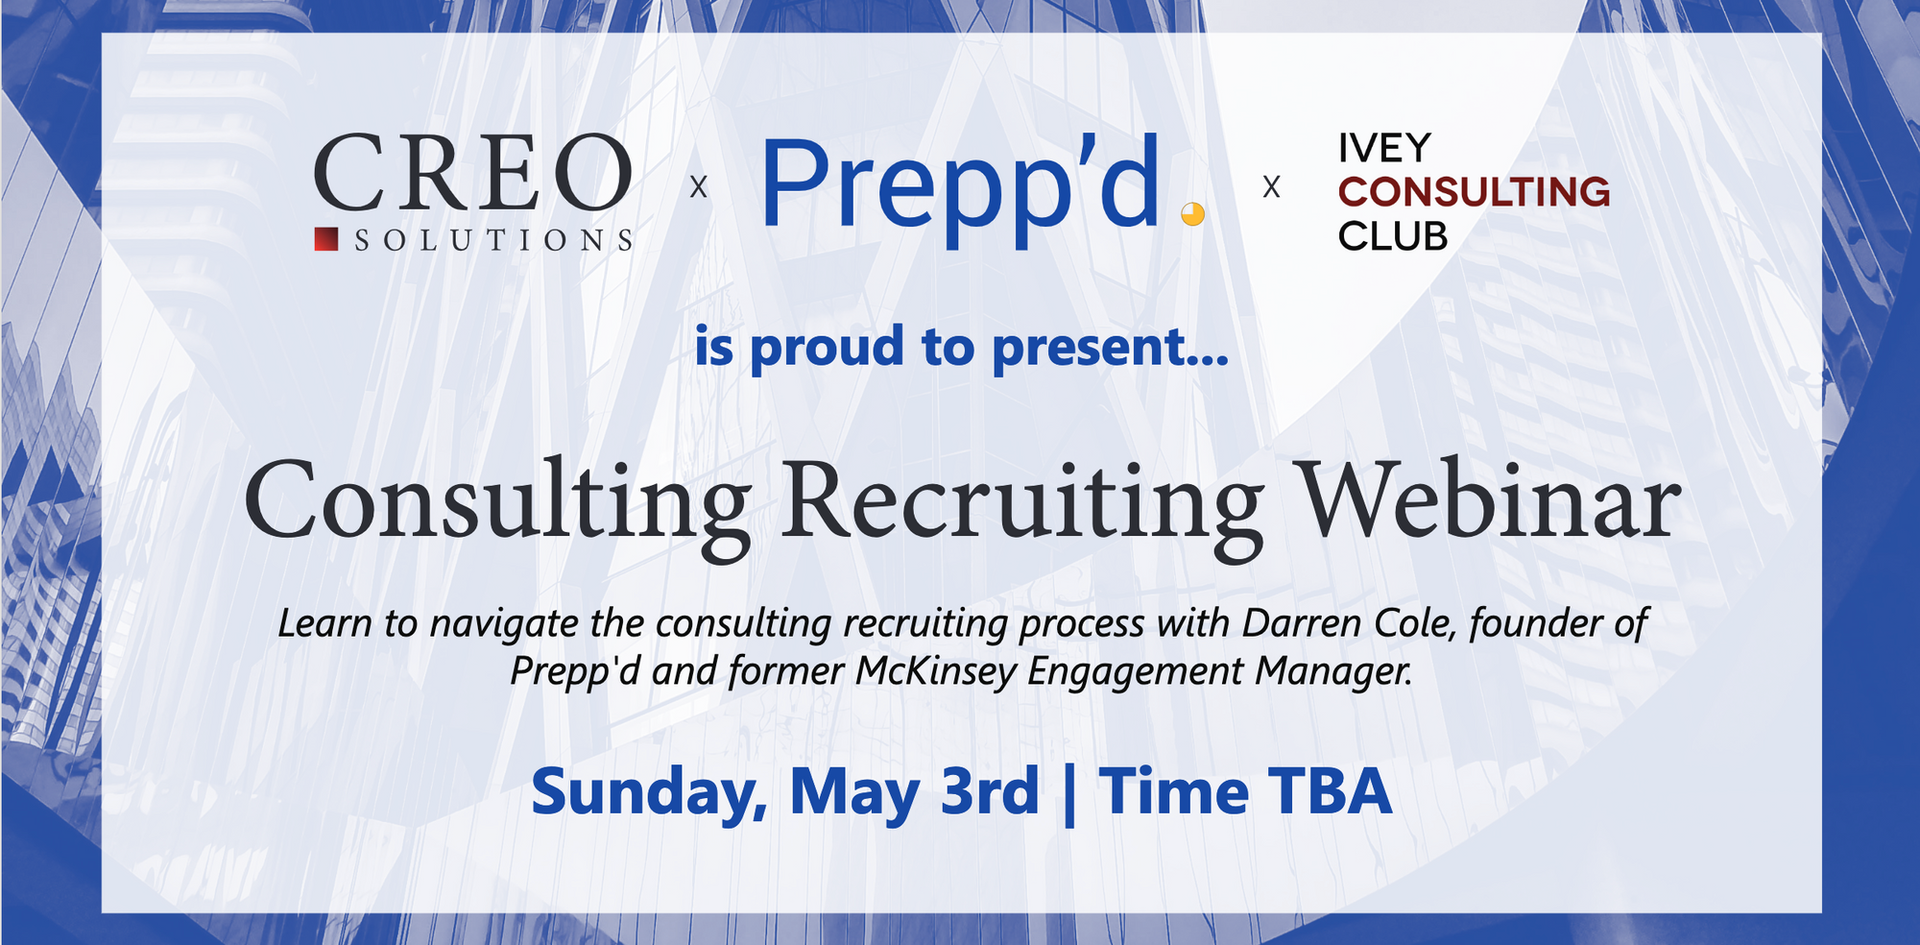 CREO x PREPP'D CONSULTING RECRUITING WORKSHOP